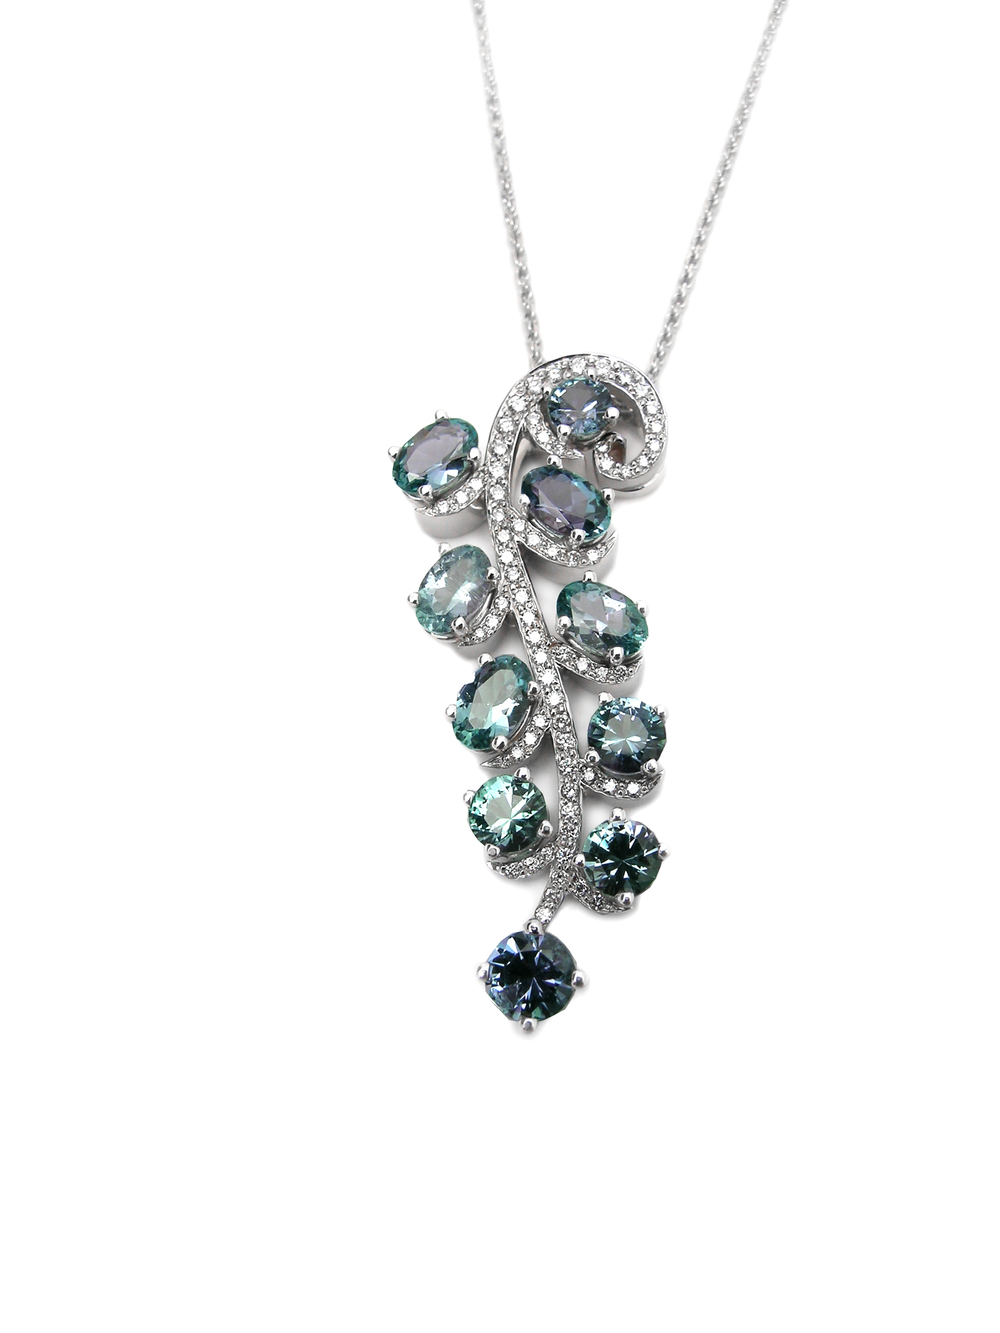 Kornarupine and Diamonds, design by Sharon Curtiss Gal